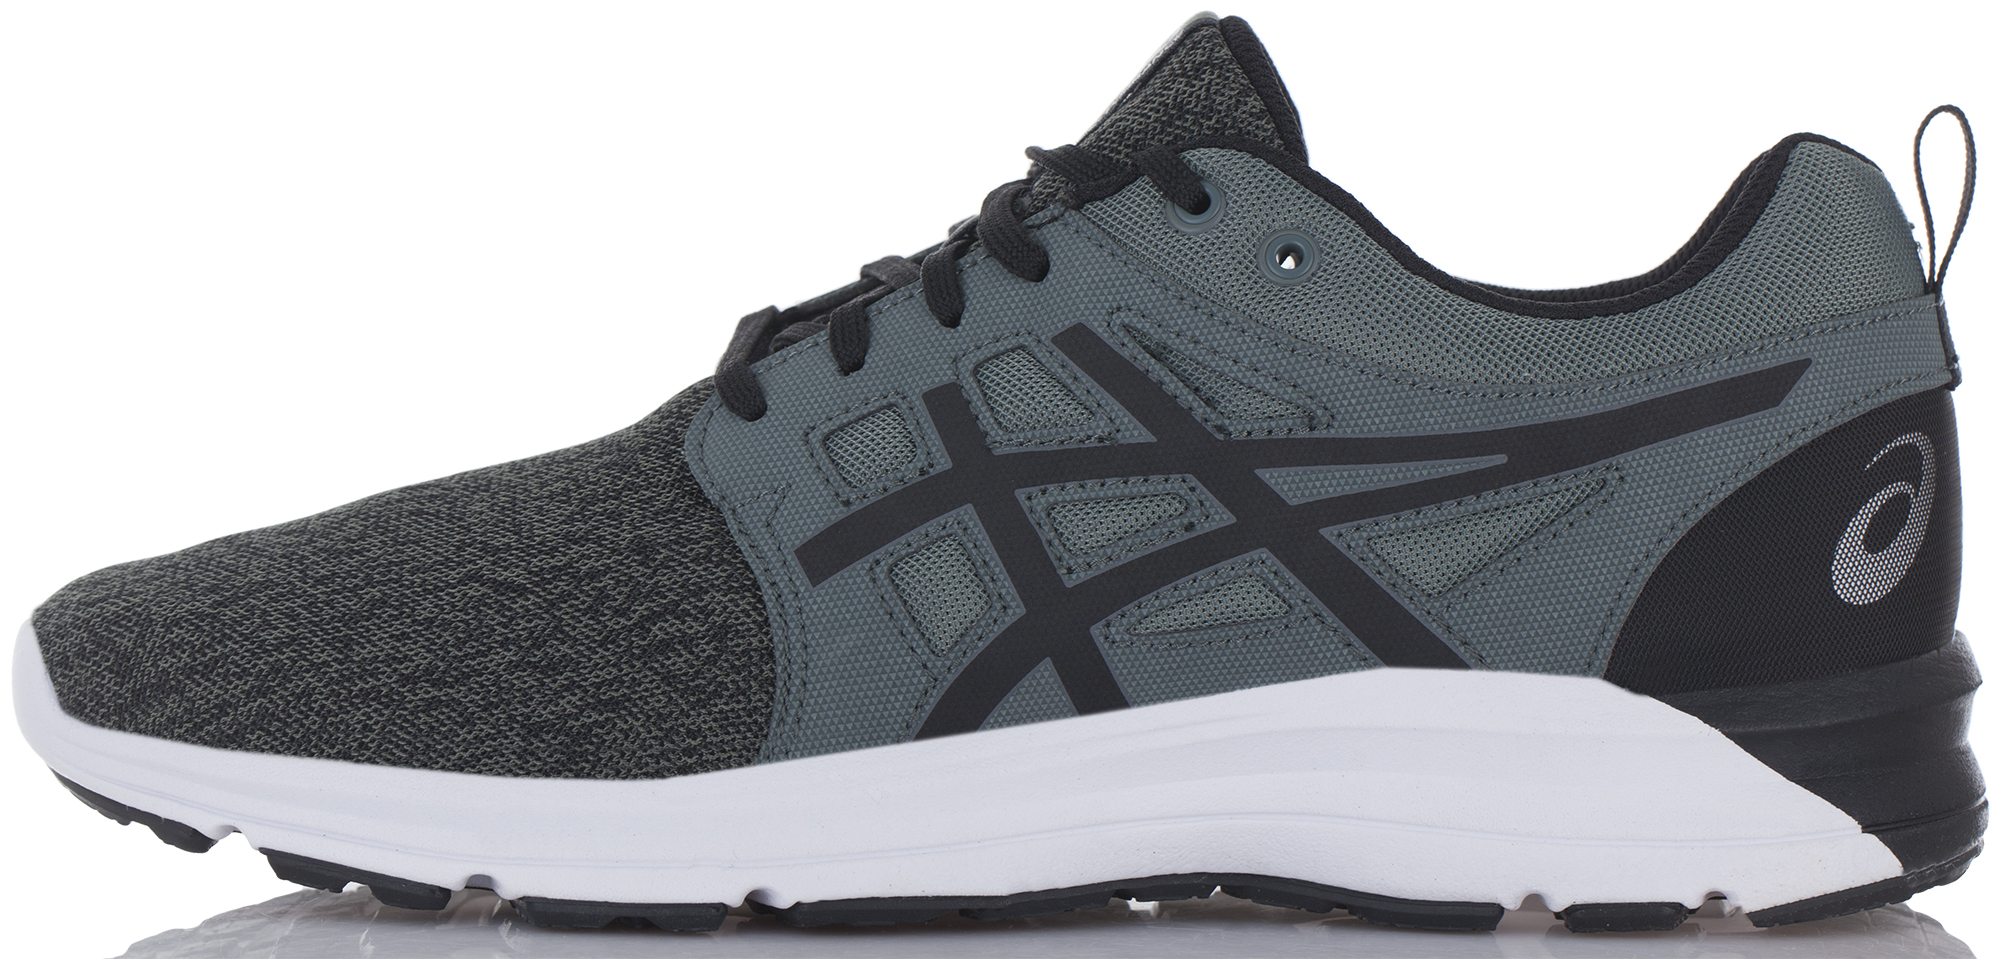 ASICS Кроссовки мужские ASICS Gel-Torrance asics gel volley elite 2